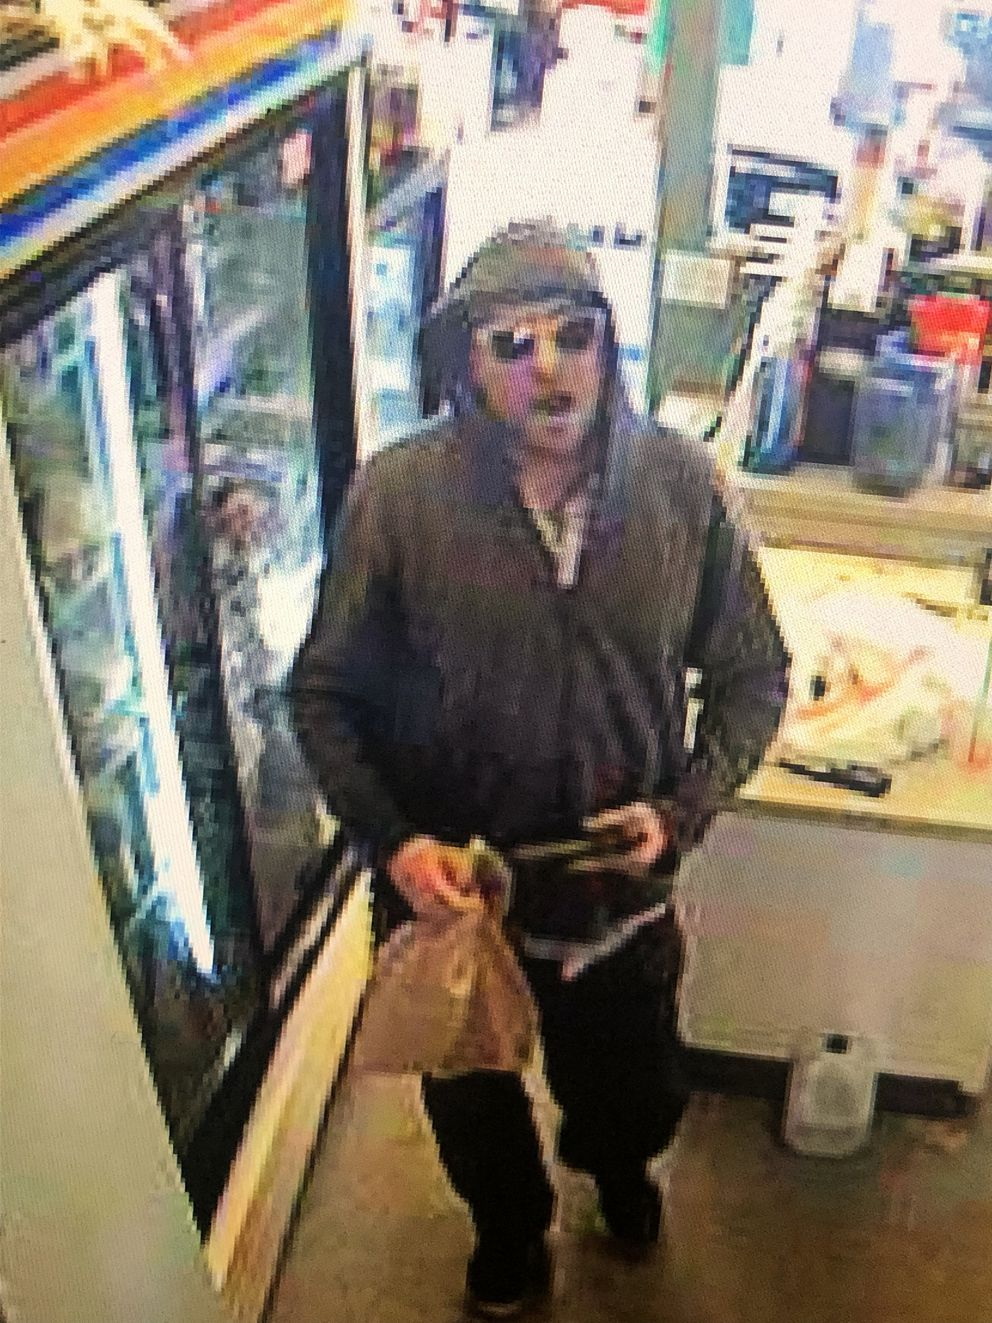 Police released this photo of a suspect in the robbery of Perkup Espresso, a coffee stand on Potter Drive, on Thursday afternoon. (Courtesy APD)